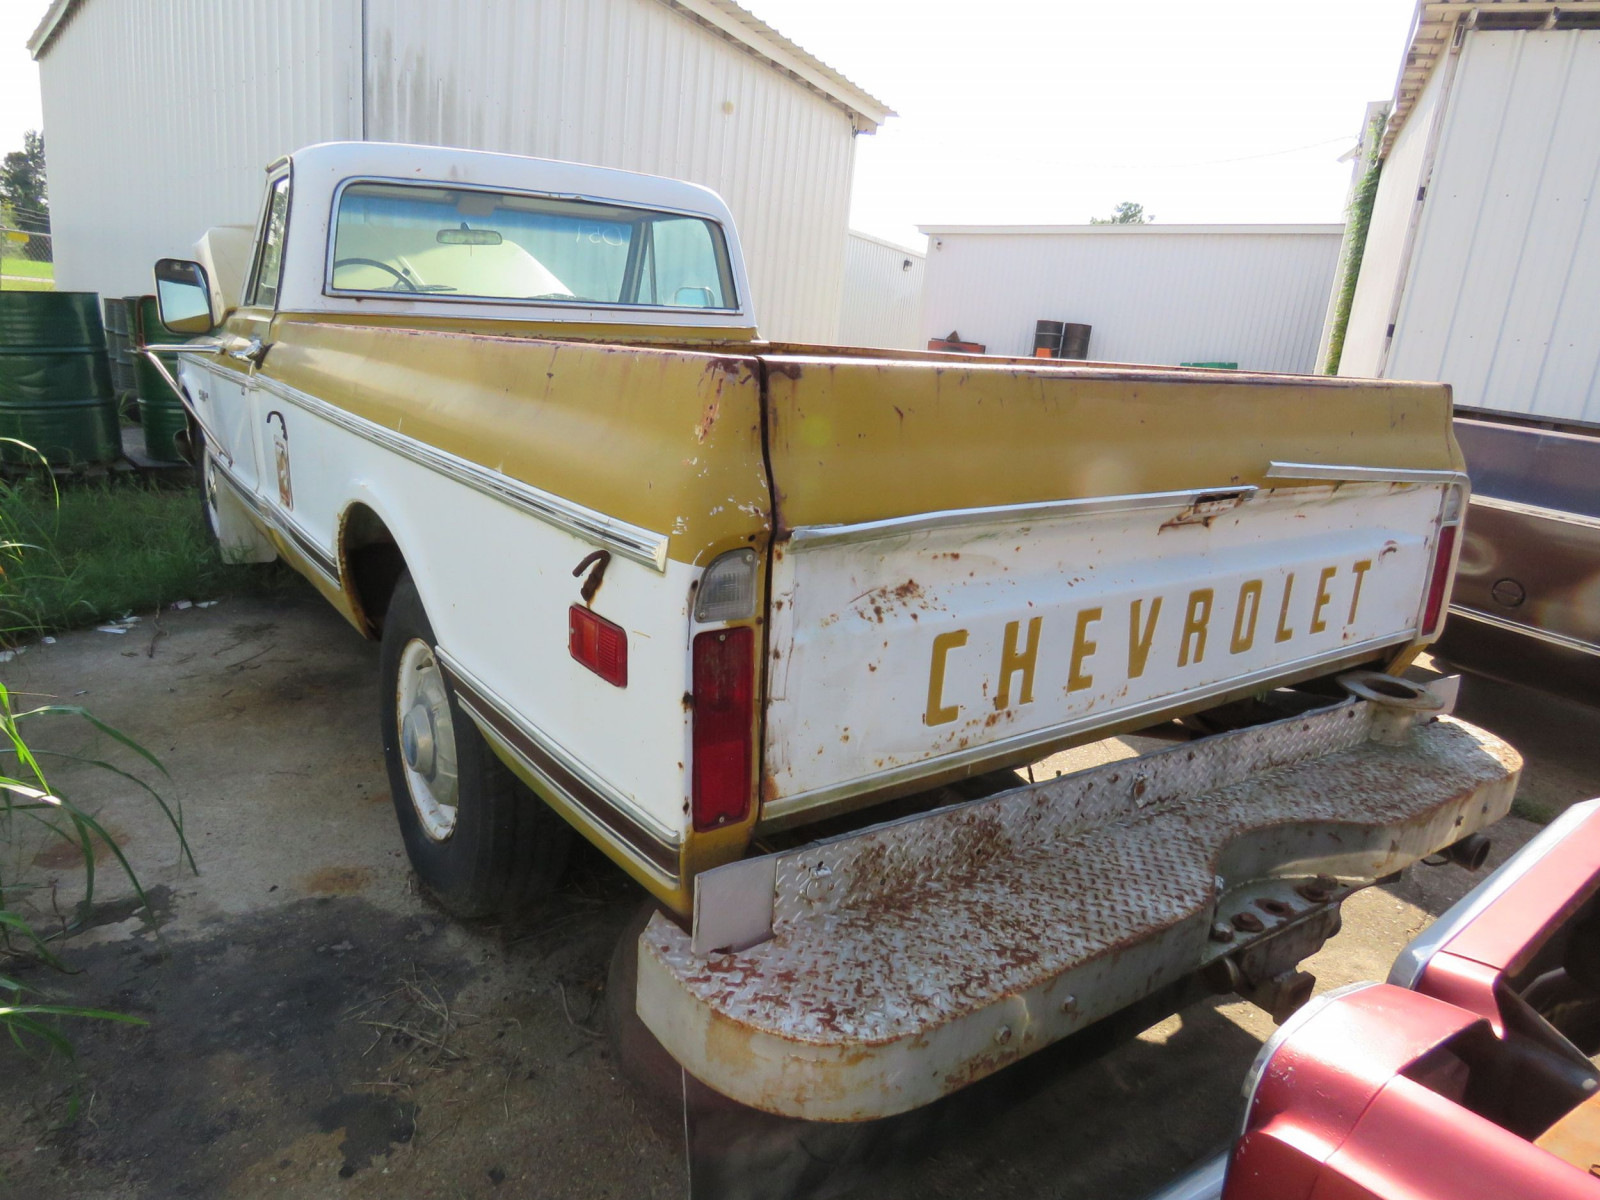 1972 Chevrolet Custom C20 Pickup - Image 7